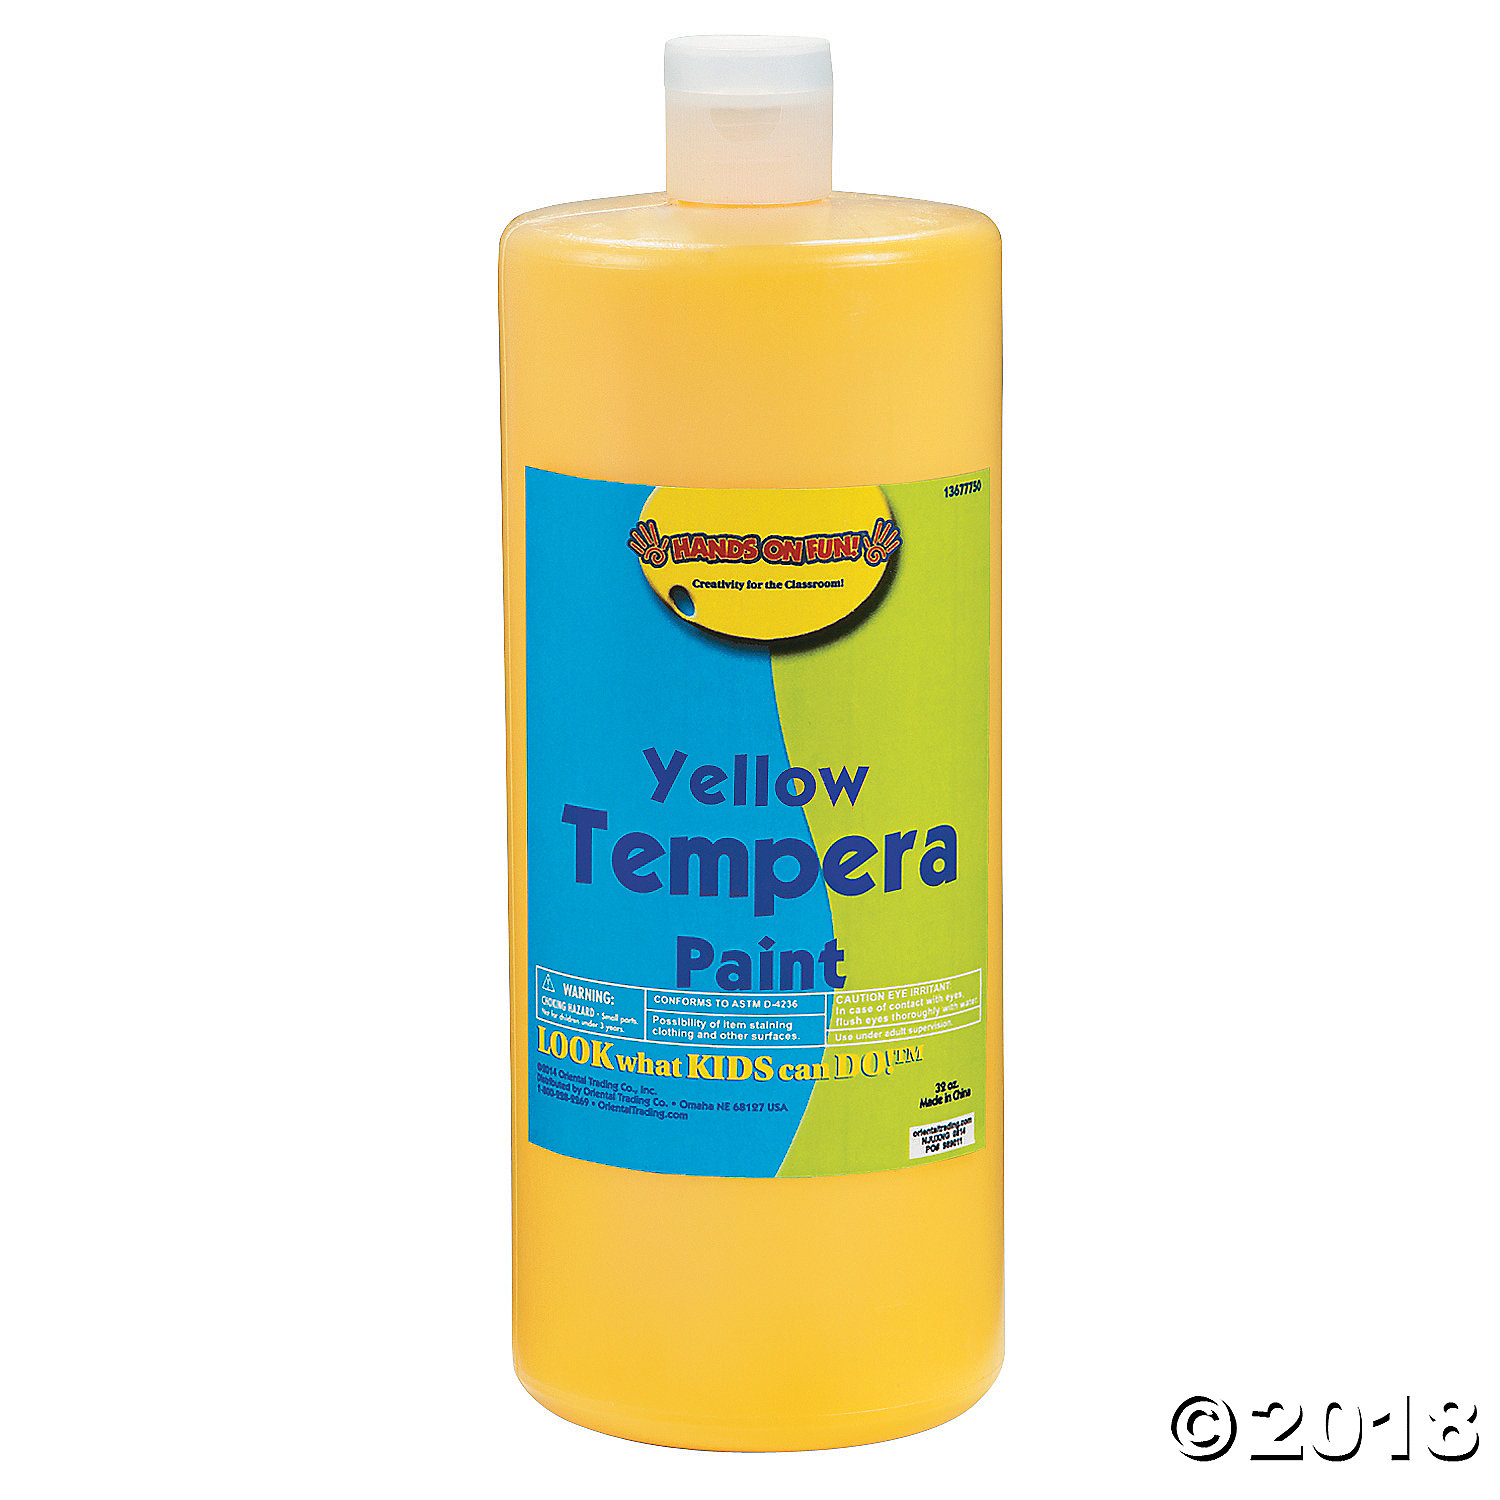 Yellow Tempera Paints(pack of 1)